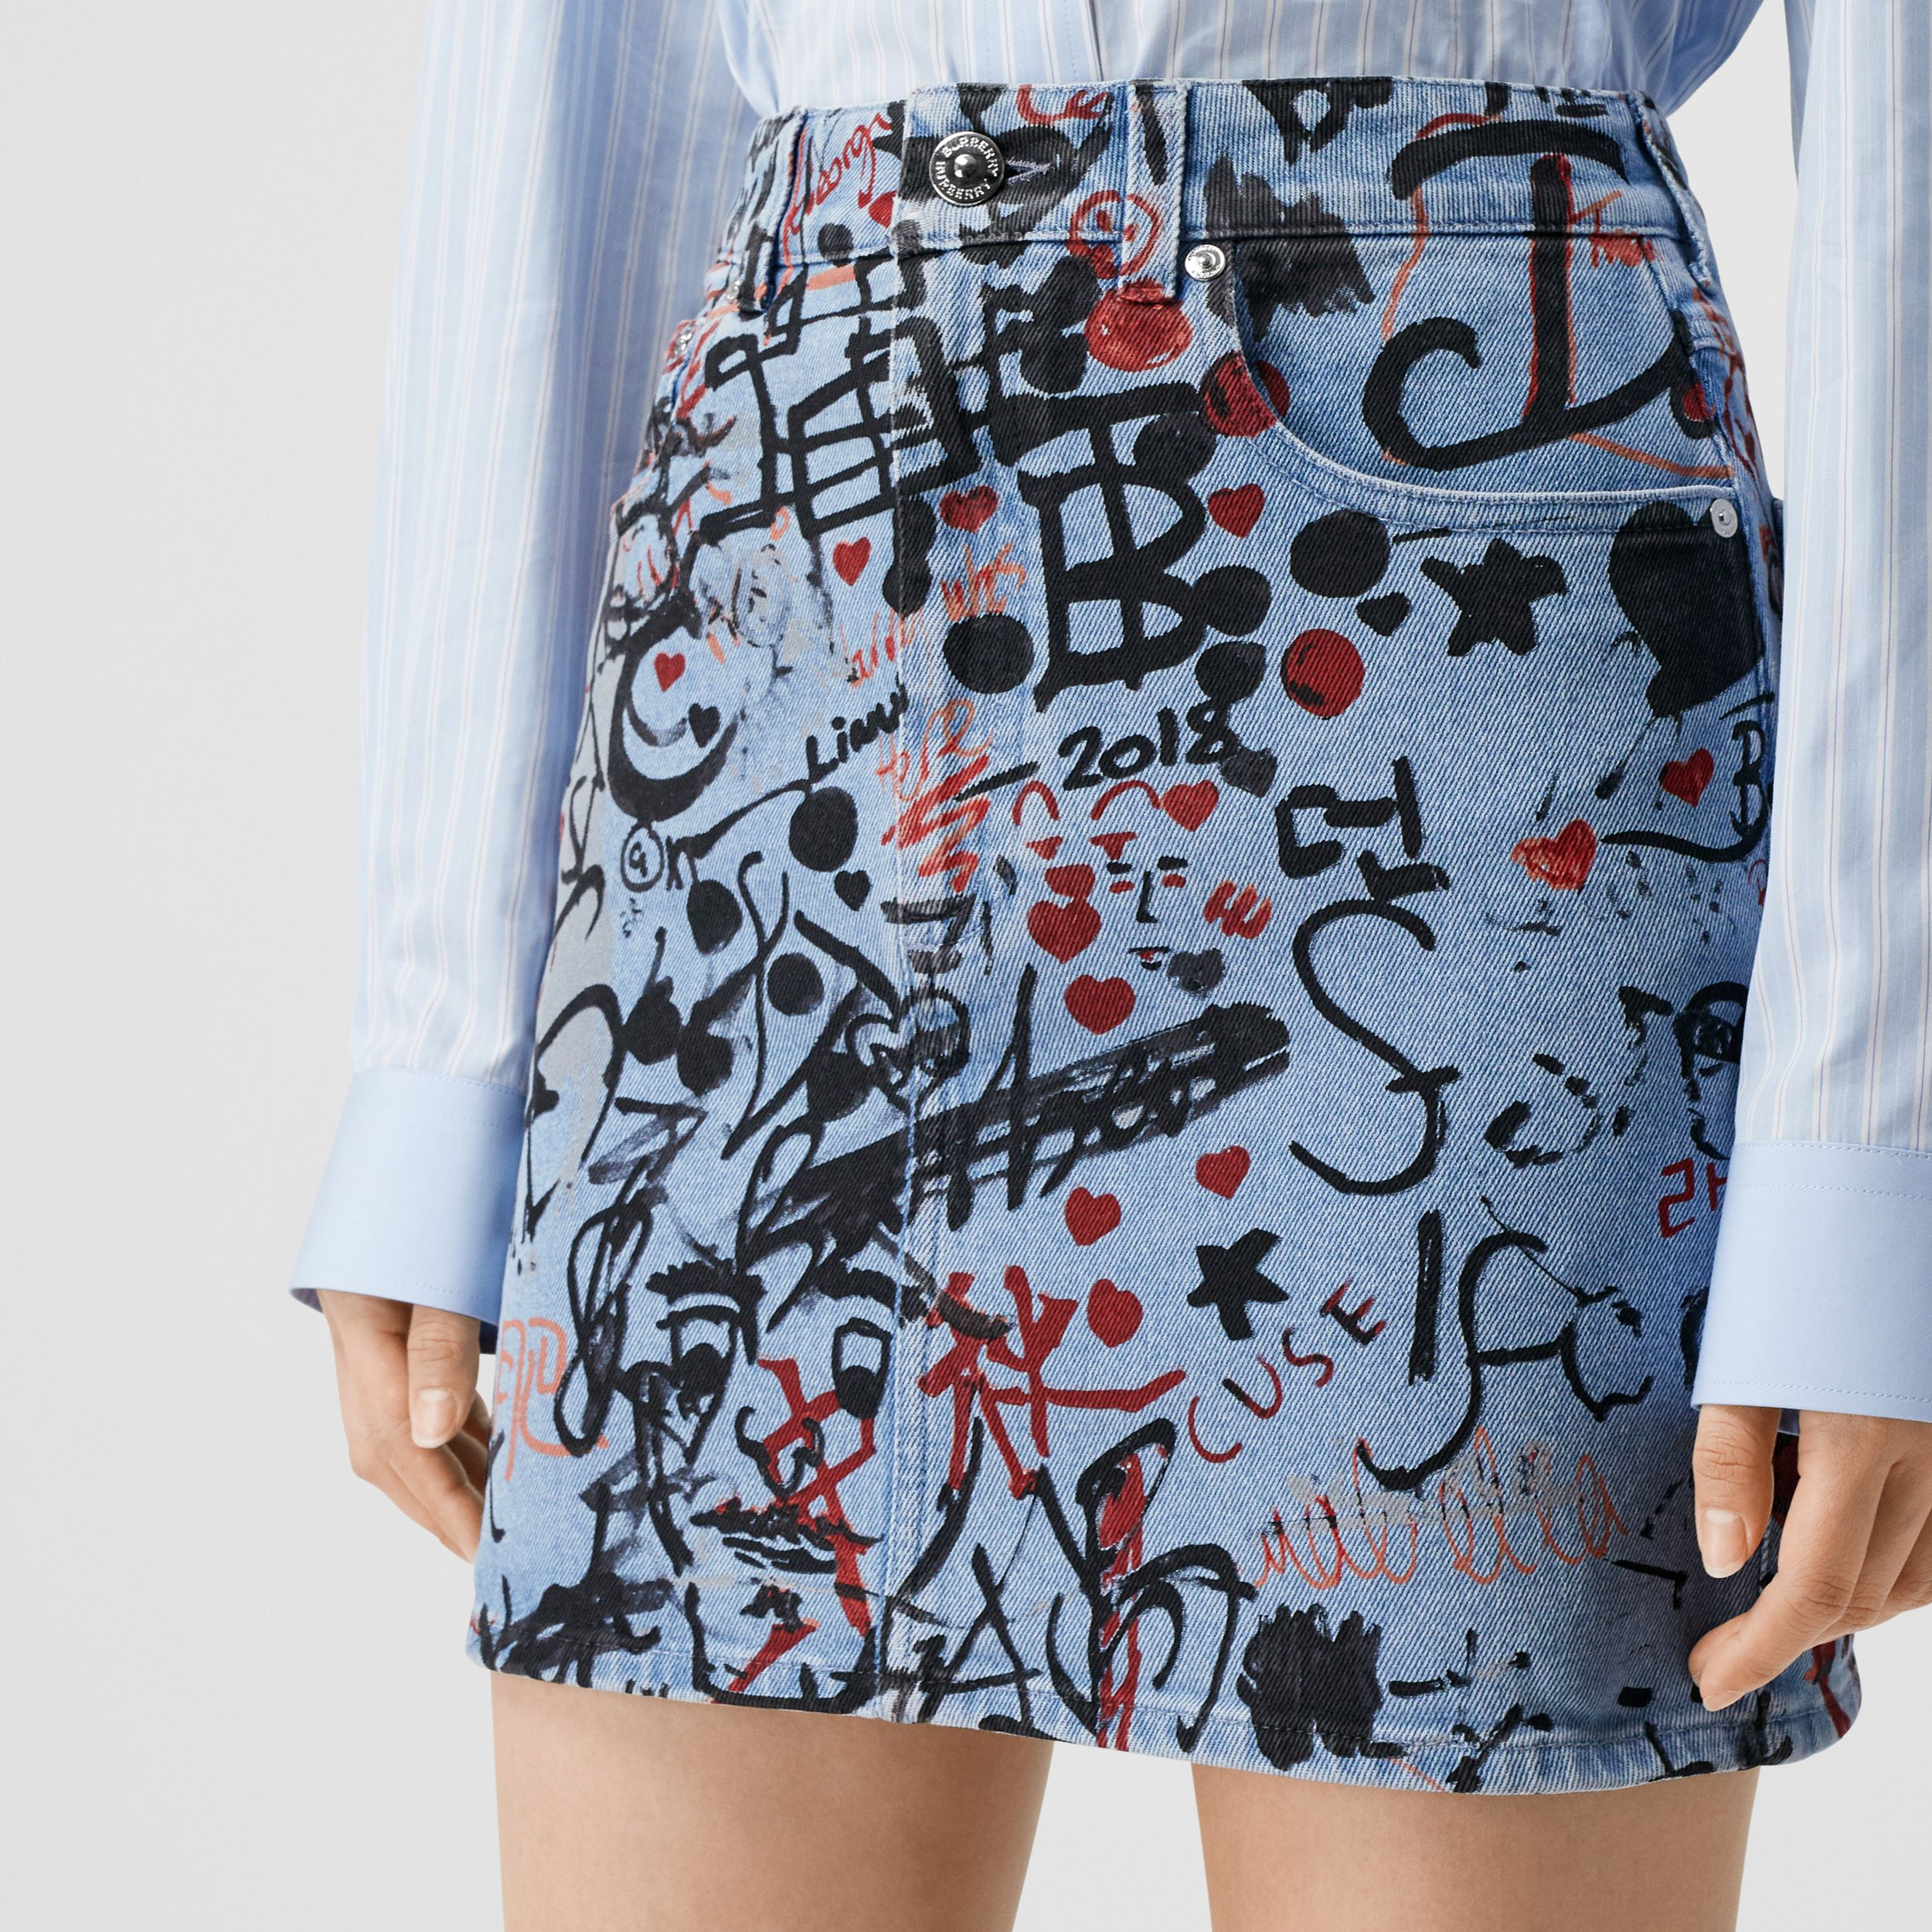 Graffiti Print Washed Denim Mini Skirt in Light Indigo - Women | Burberry Australia - 2